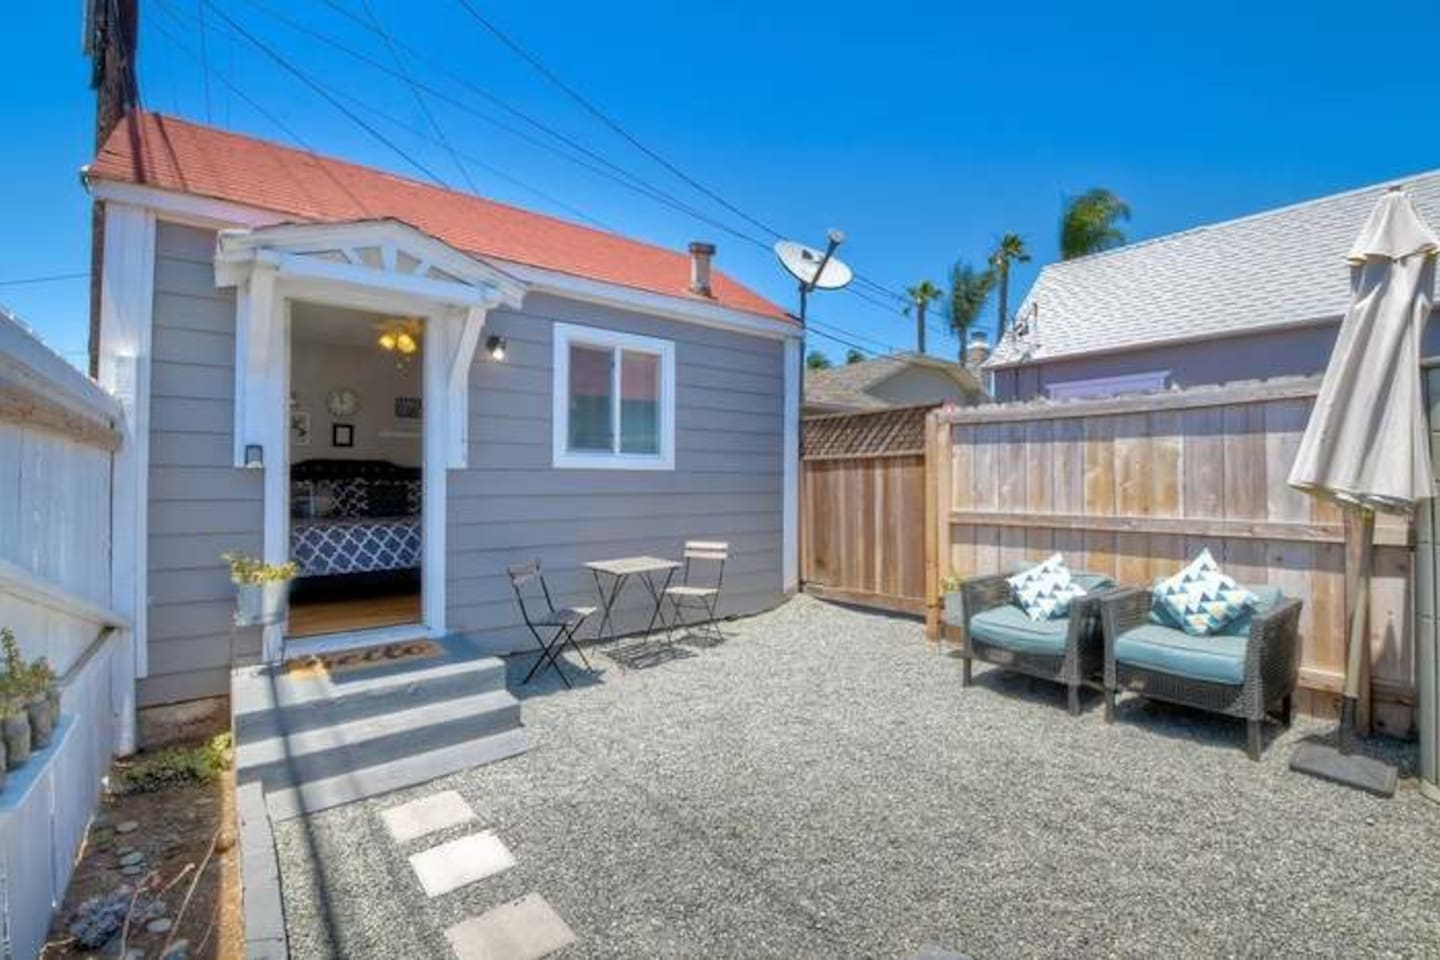 Private courtyard entrance with seating areas for relaxing and enjoying the sea breeze. Secure and gated for privacy and safe storage of surfboards or bikes